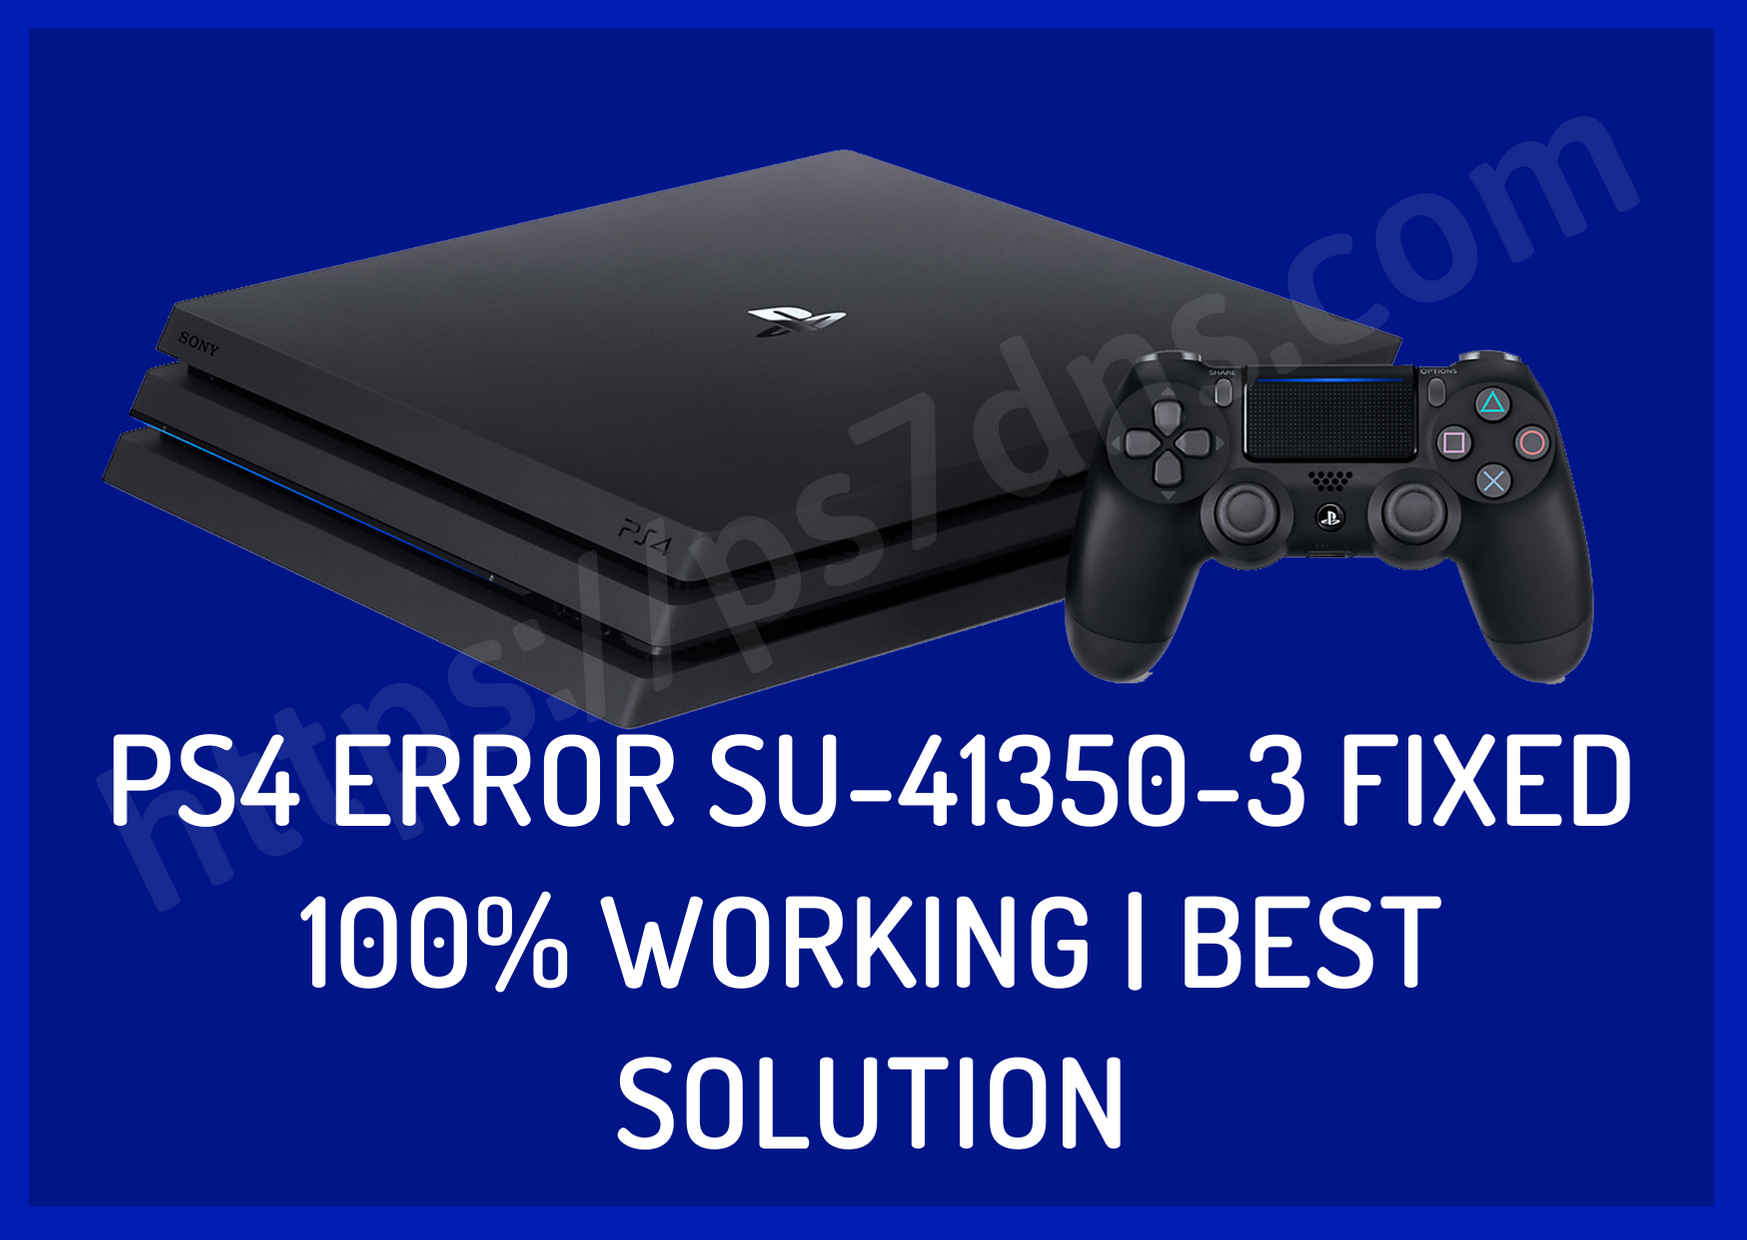 PS4 Error SU-41350-3 Fixed 100% Working | Best Solution